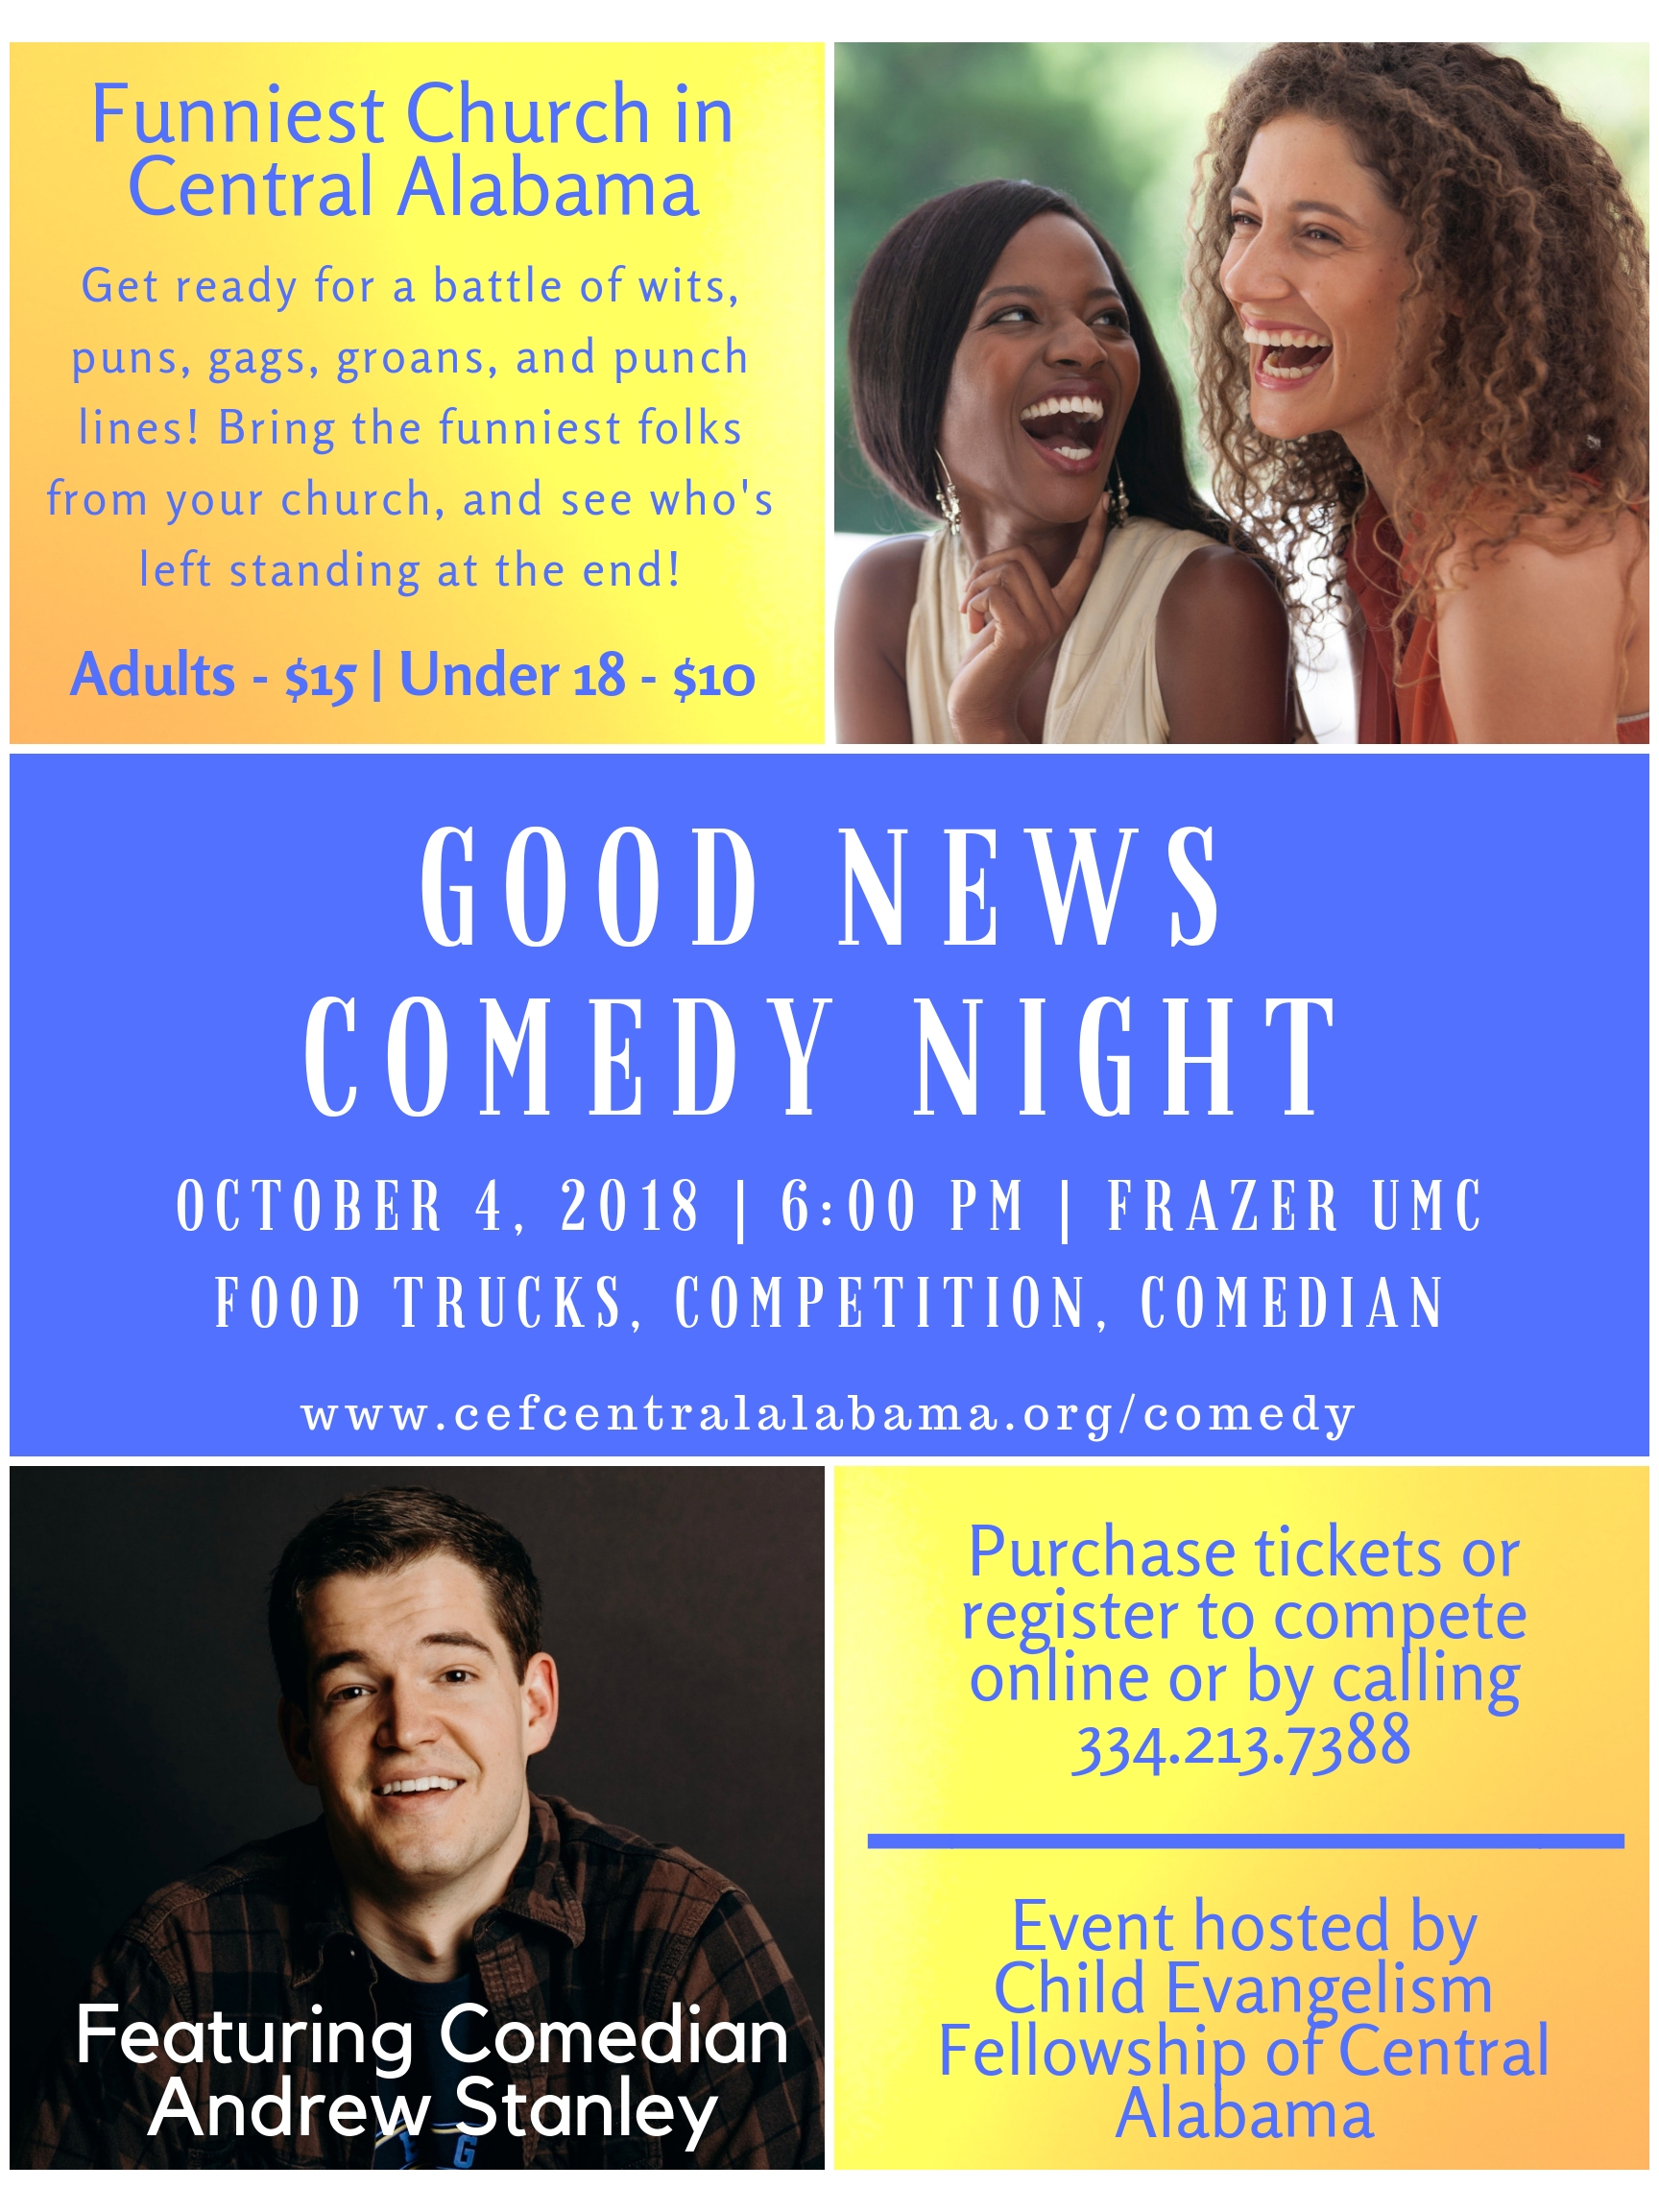 Good News Comedy Night presented by CEF Central Alabama